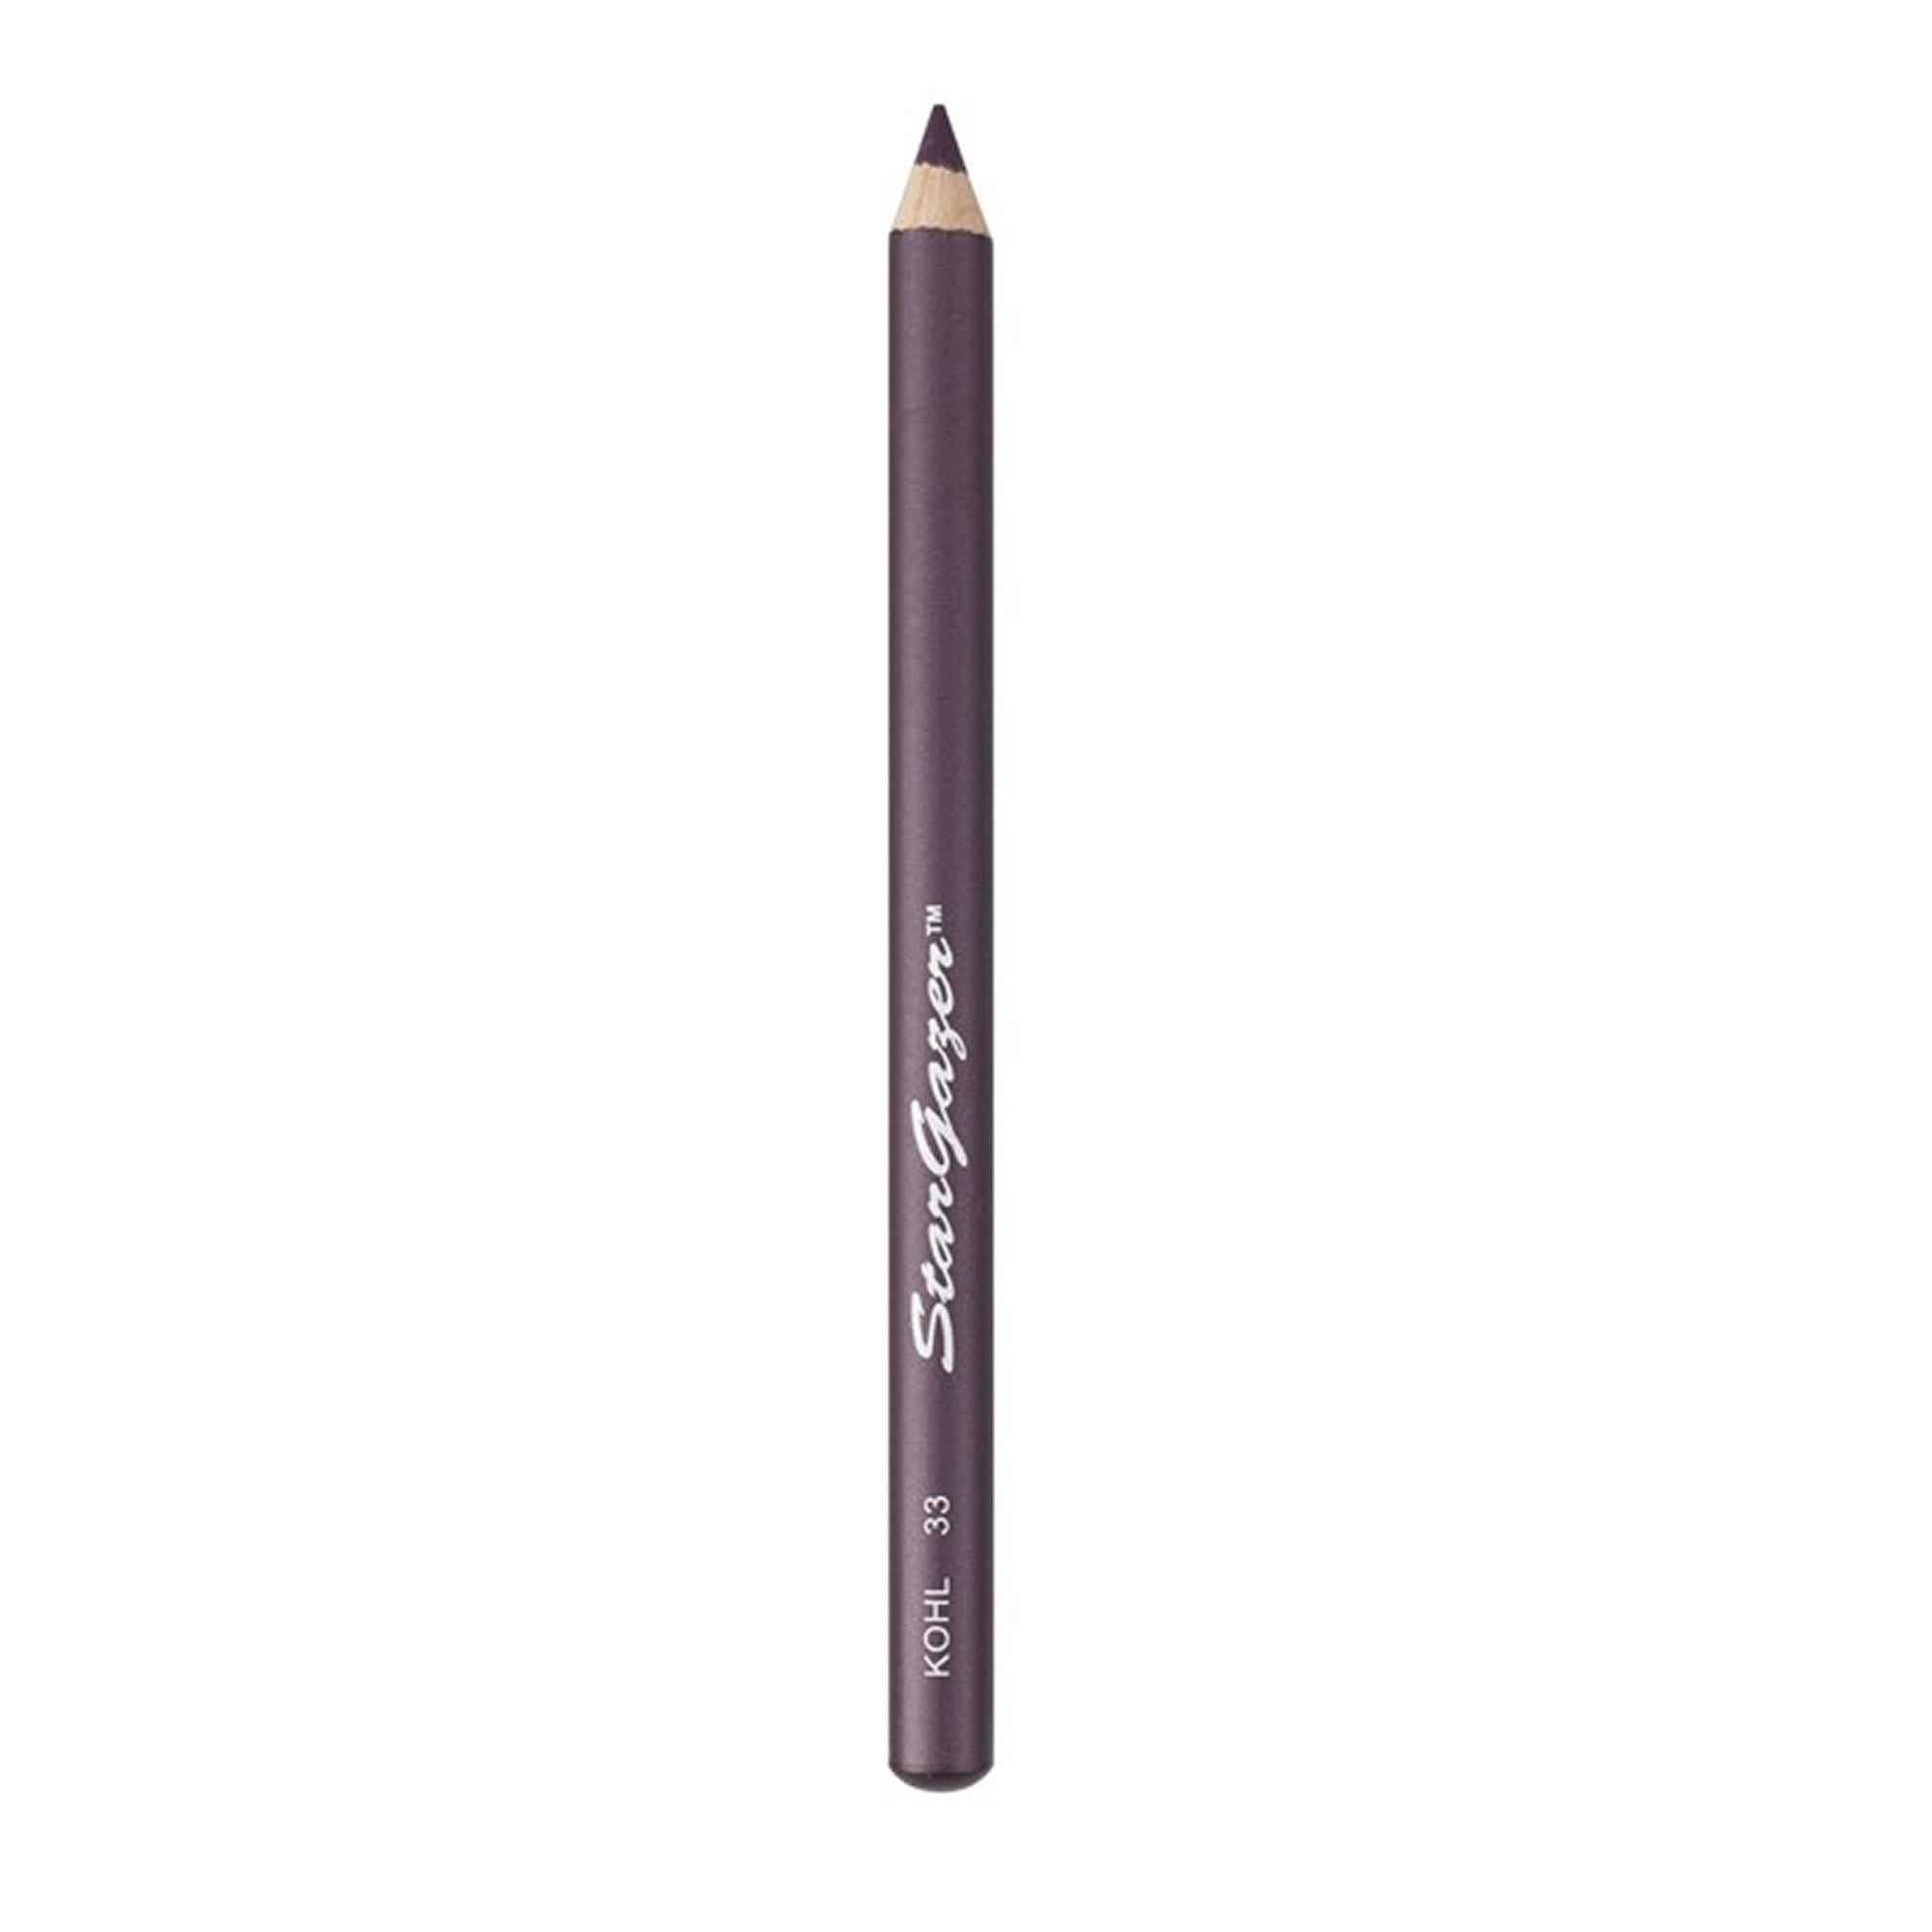 Stargazer Soft Eye Pencil - 33 - Red Carpet FX - Professional Makeup